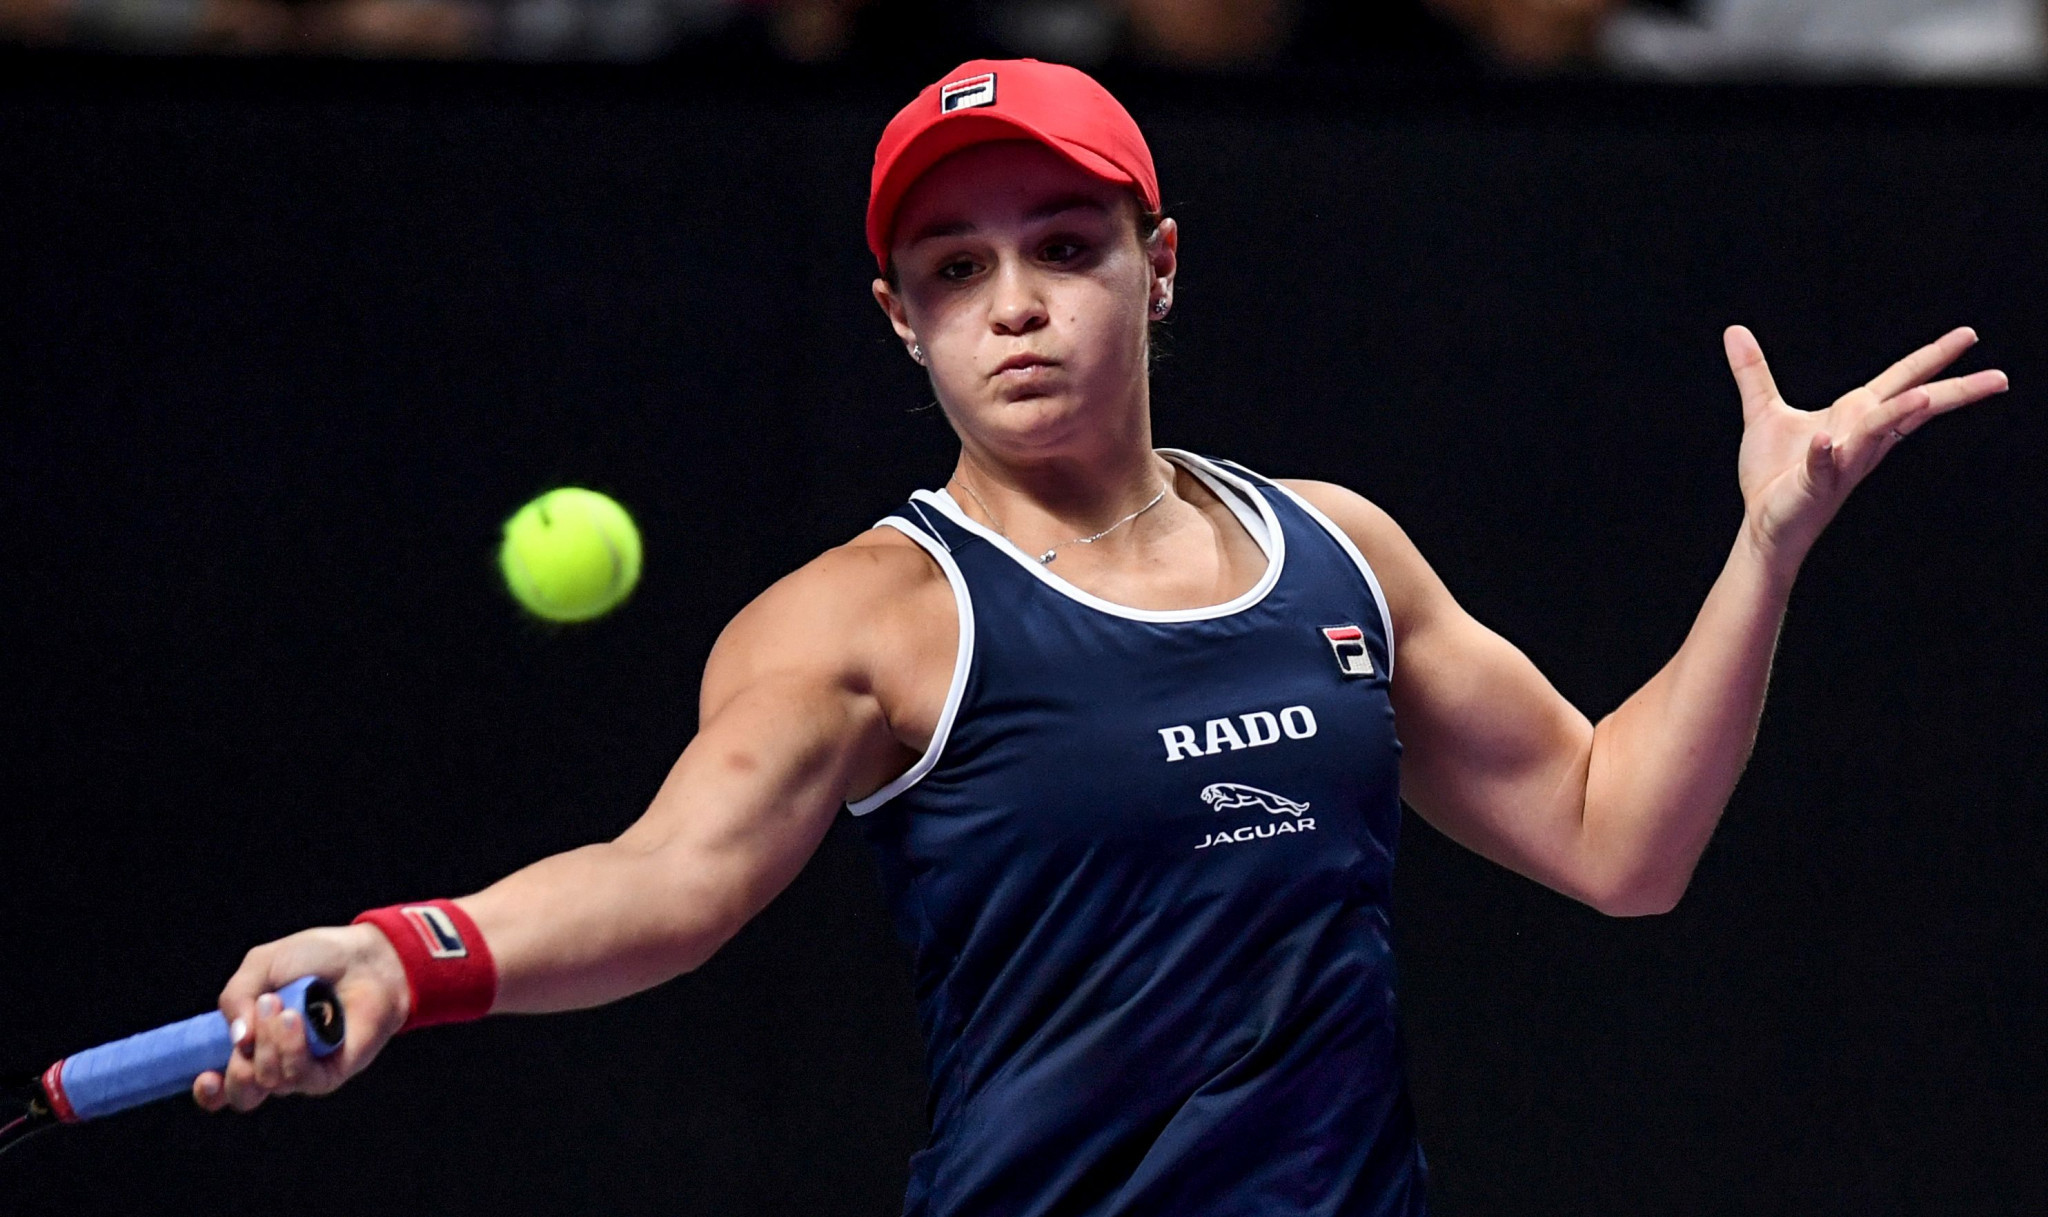 Barty claims record prize money after beating Svitolina to win WTA Finals